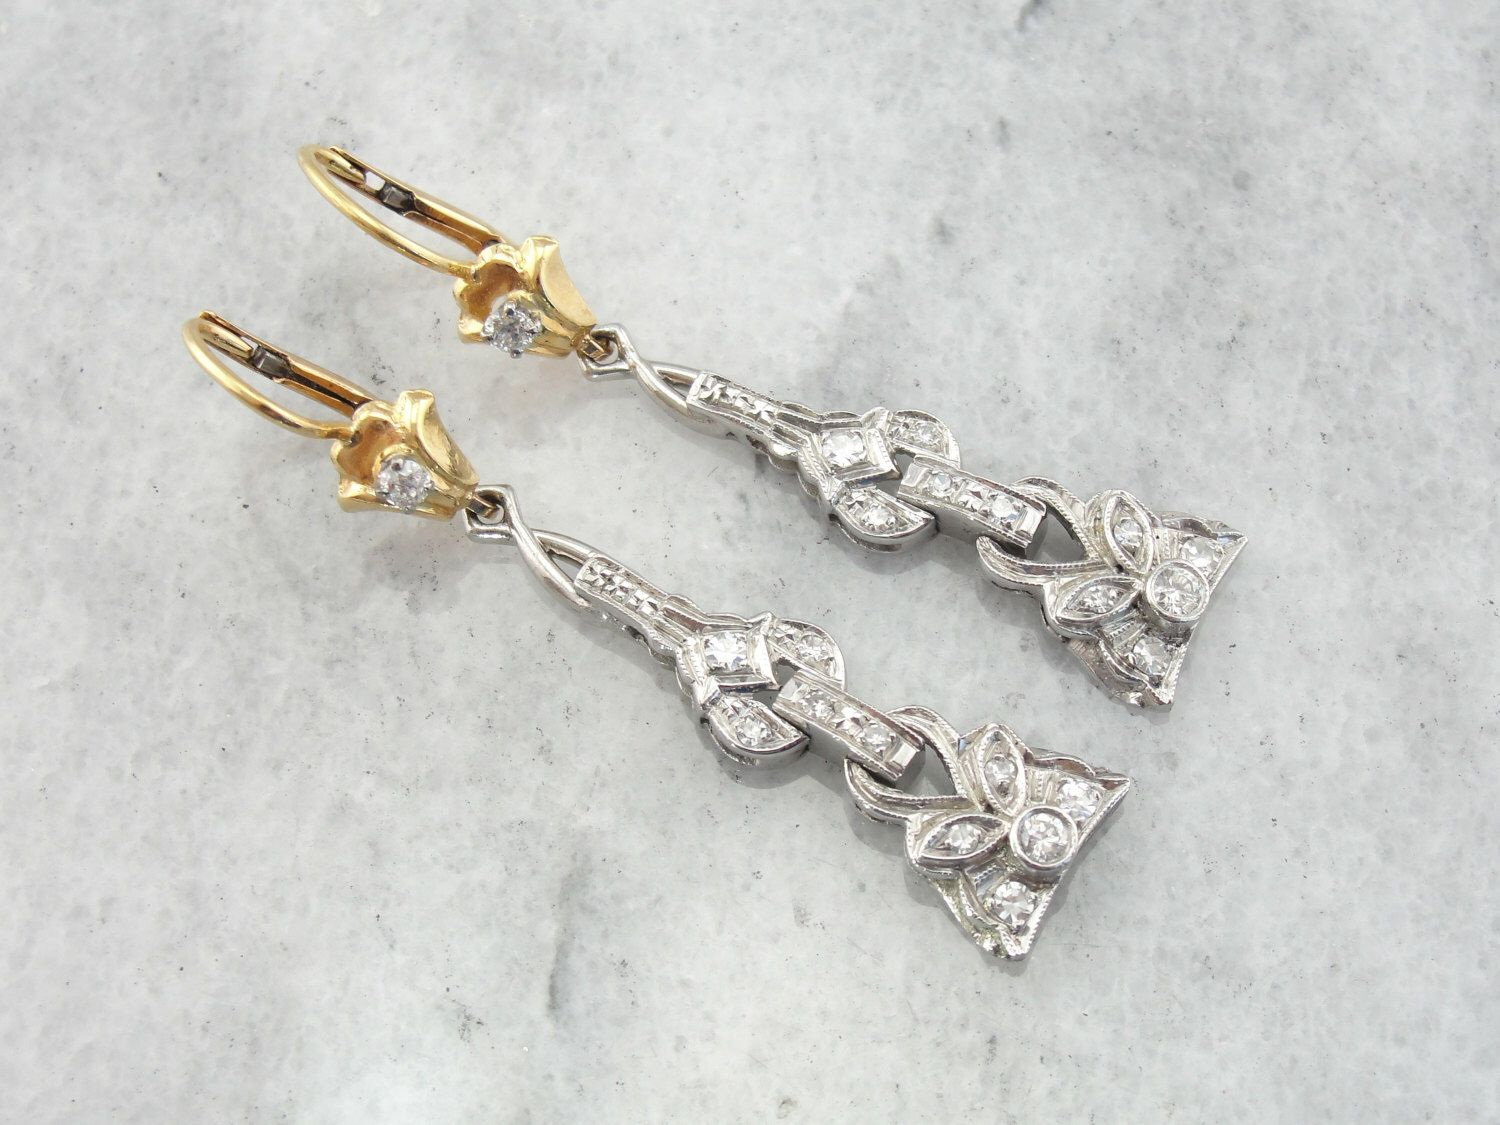 Yellow  Gold and Platinum Diamond Drop Earrings from Art Deco Era Bar Pin HYP19R-N by MSJewelers on Etsy https://www.etsy.com/listing/159828495/yellow-gold-and-platinum-diamond-drop